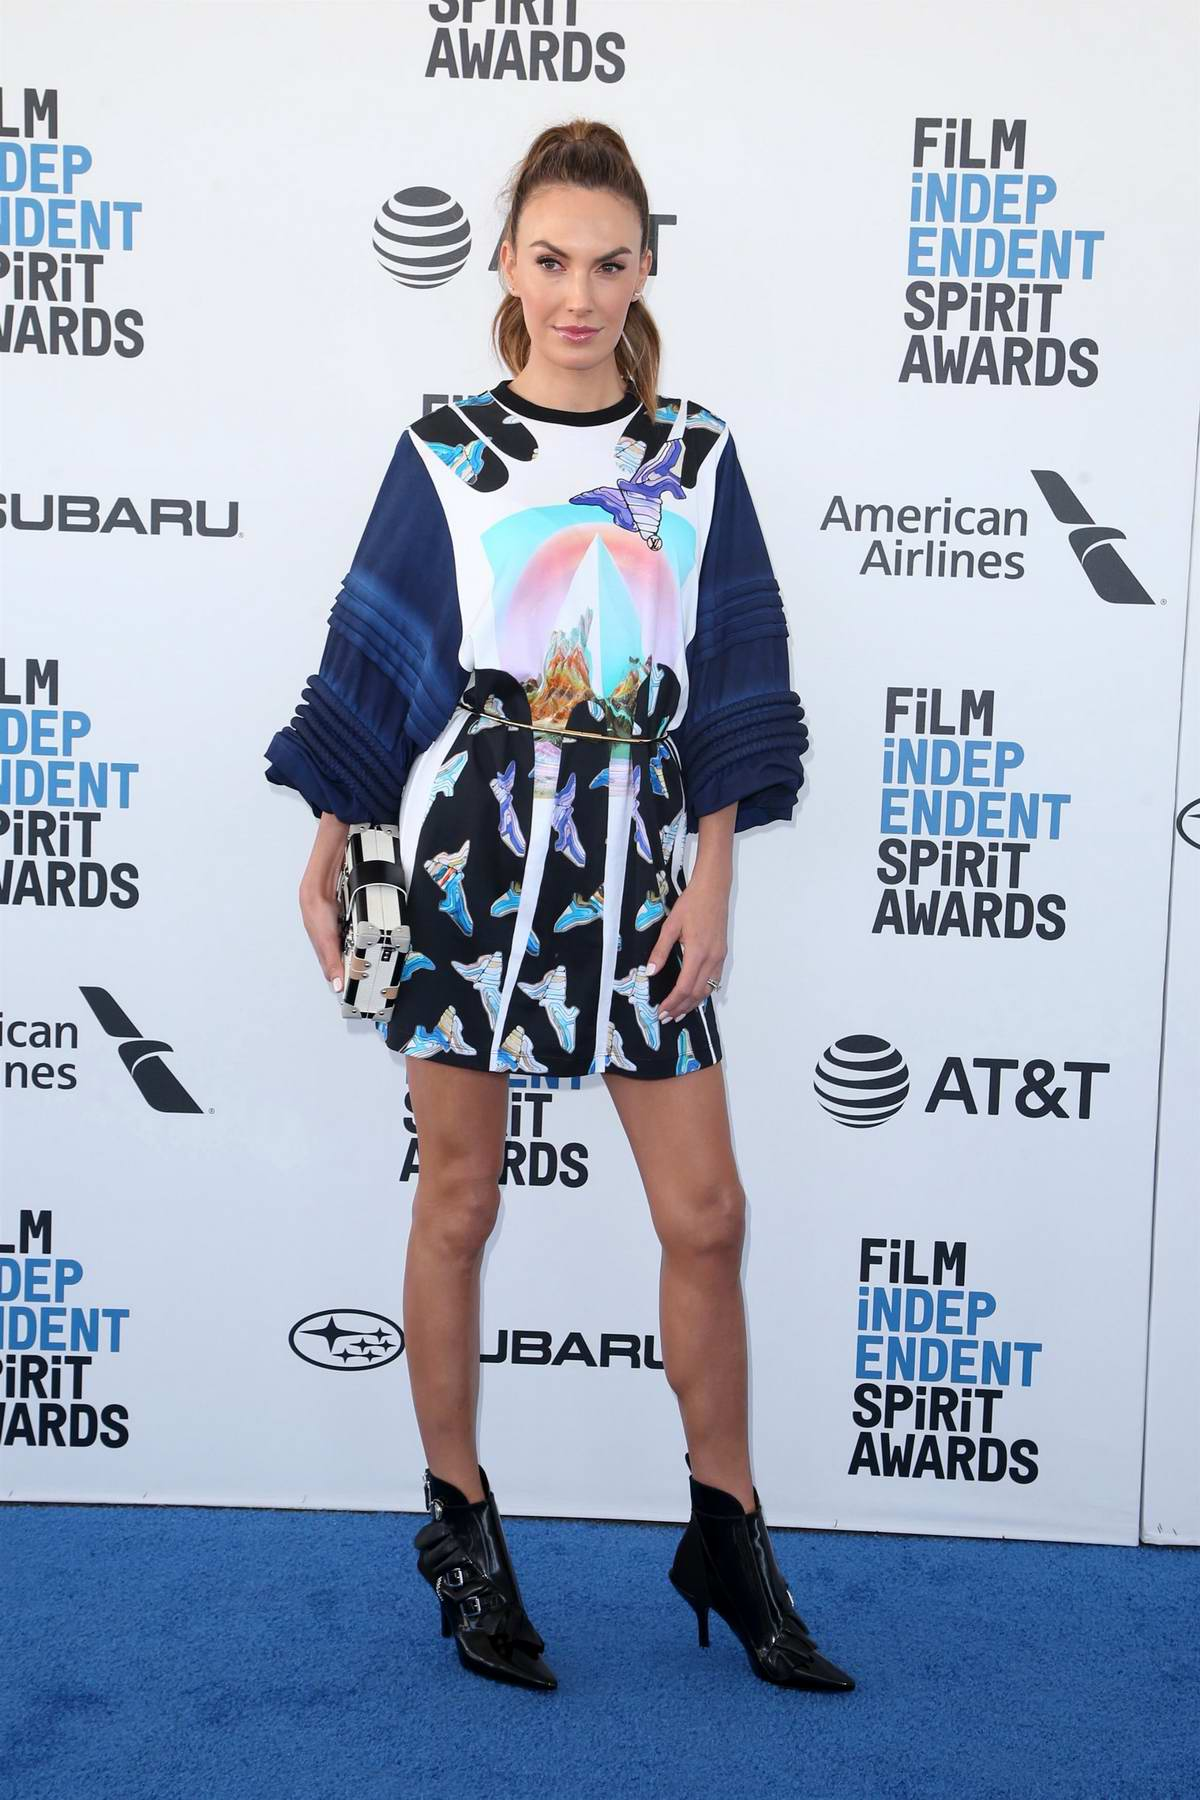 Elizabeth Chambers attends the 34th Film Independent Spirit Awards in Santa Monica, California